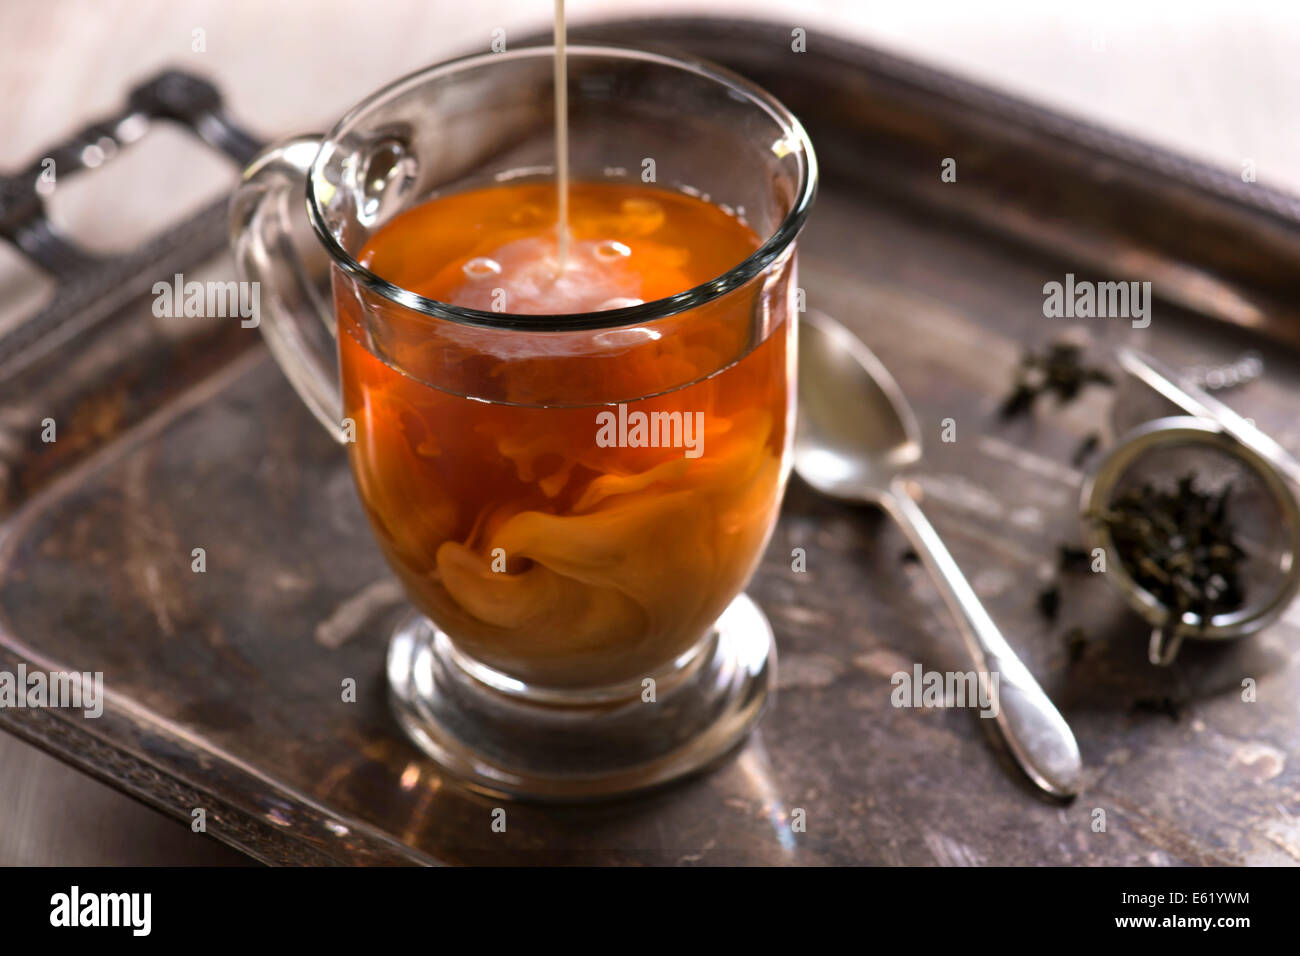 A glass of tea with milk pouring in and swirling. Antique, rustic styling with light background. Stock Photo